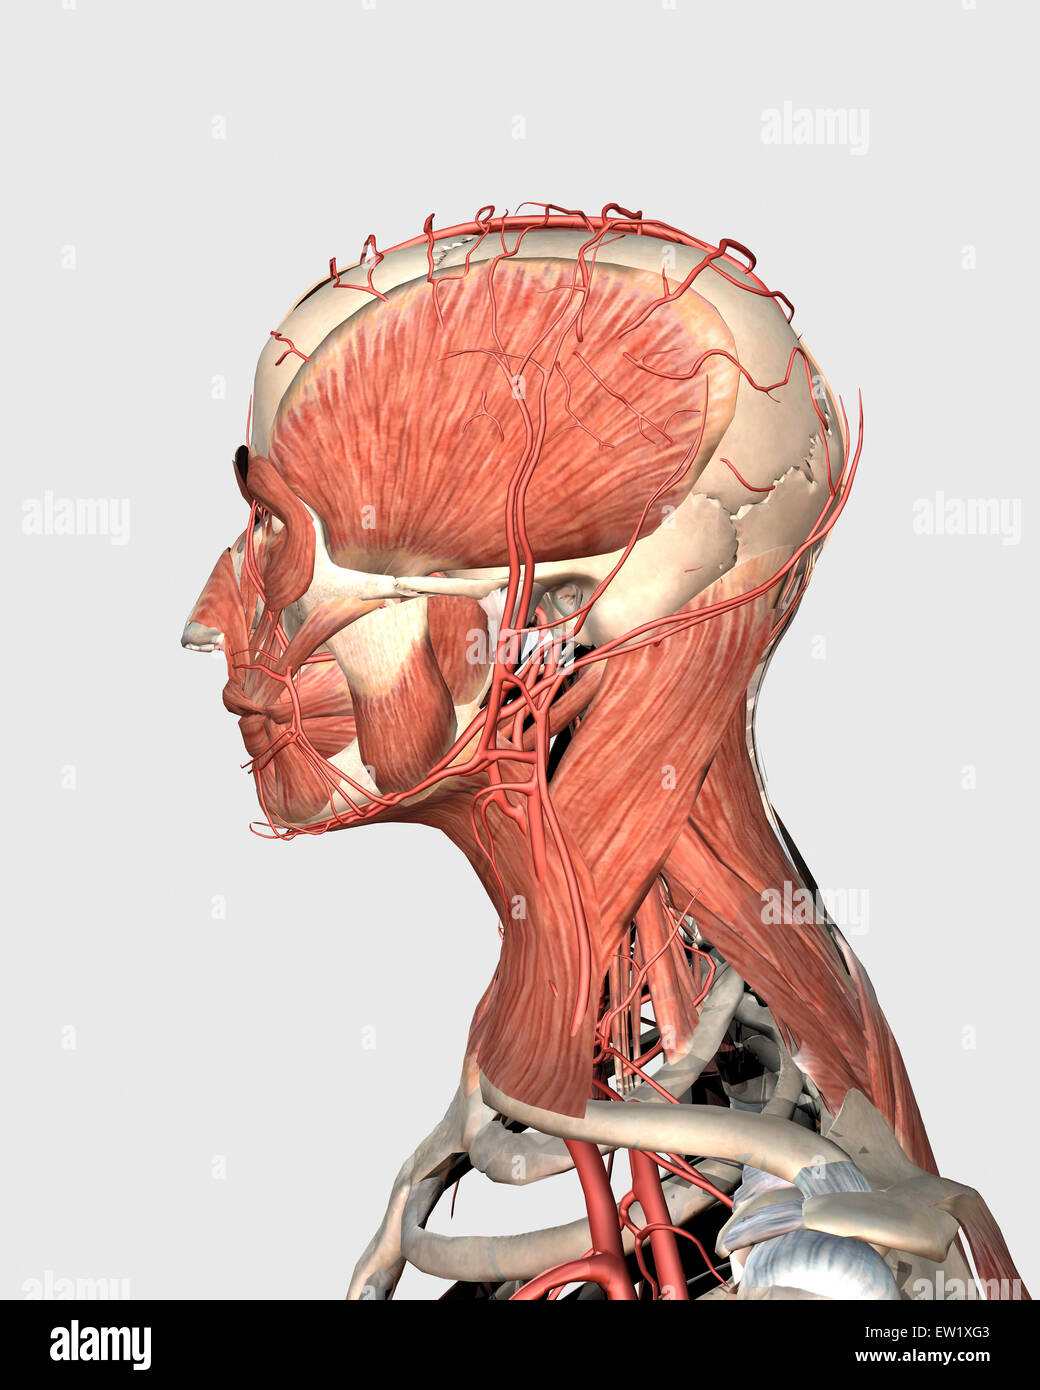 Medical Illustration Showing Human Head And Neck Muscles With Veins